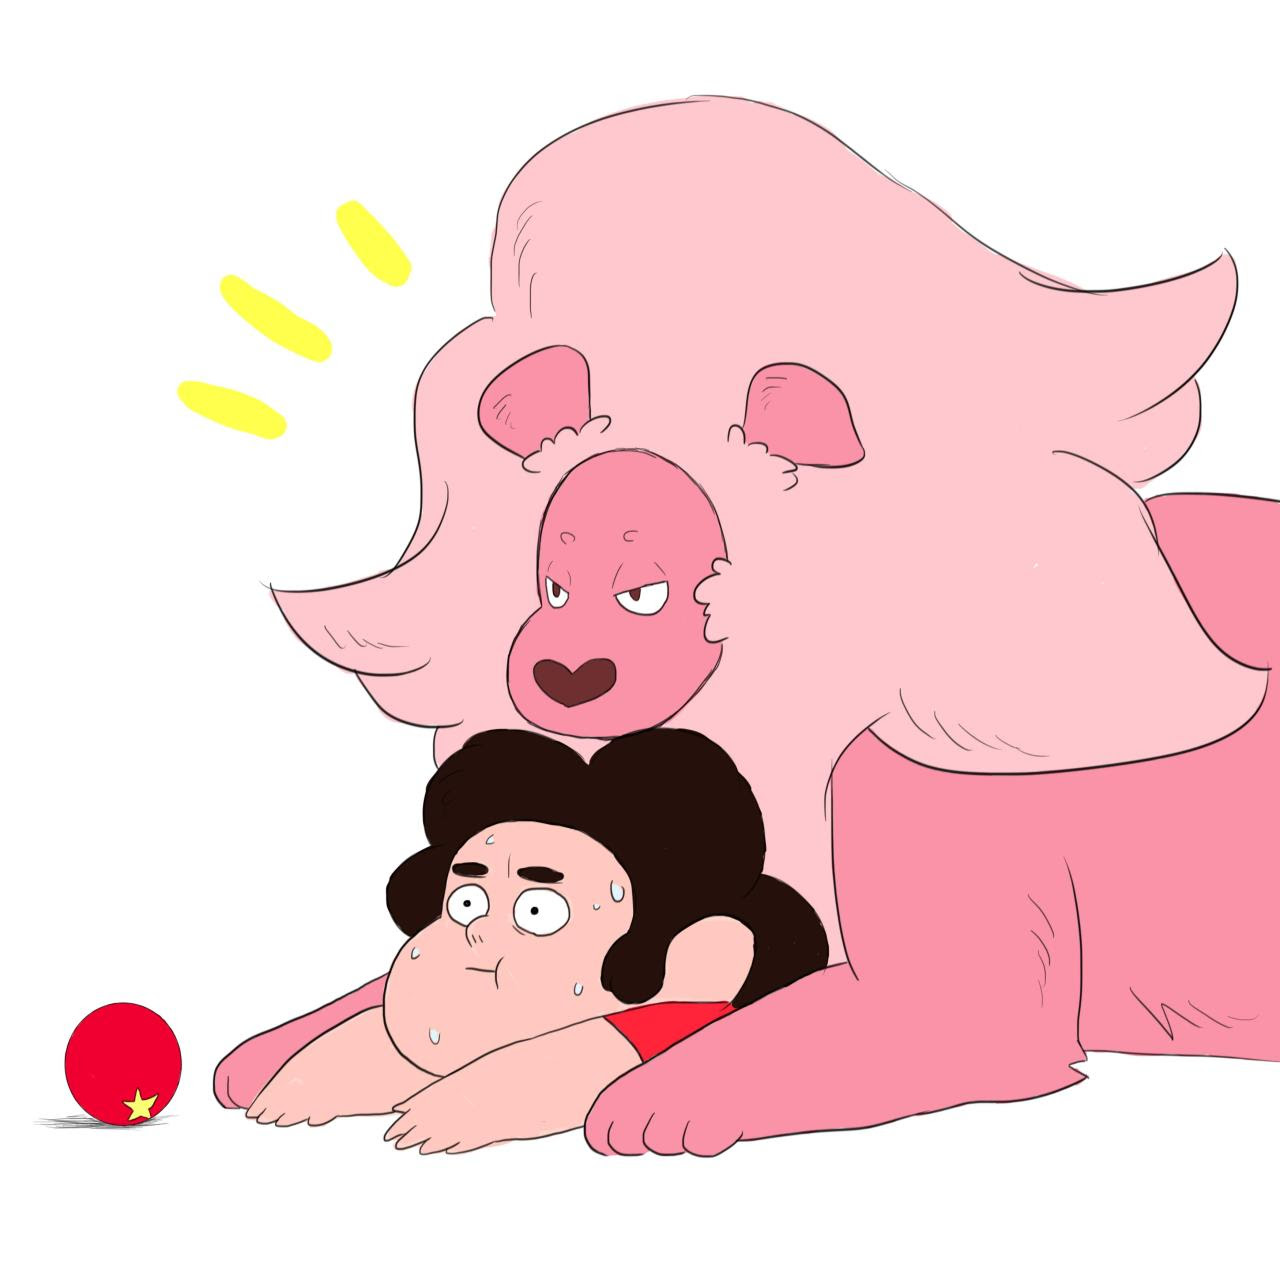 Steven tried to play with Lion, but it didn't work out the way he thought/ He's scared he might never escape.